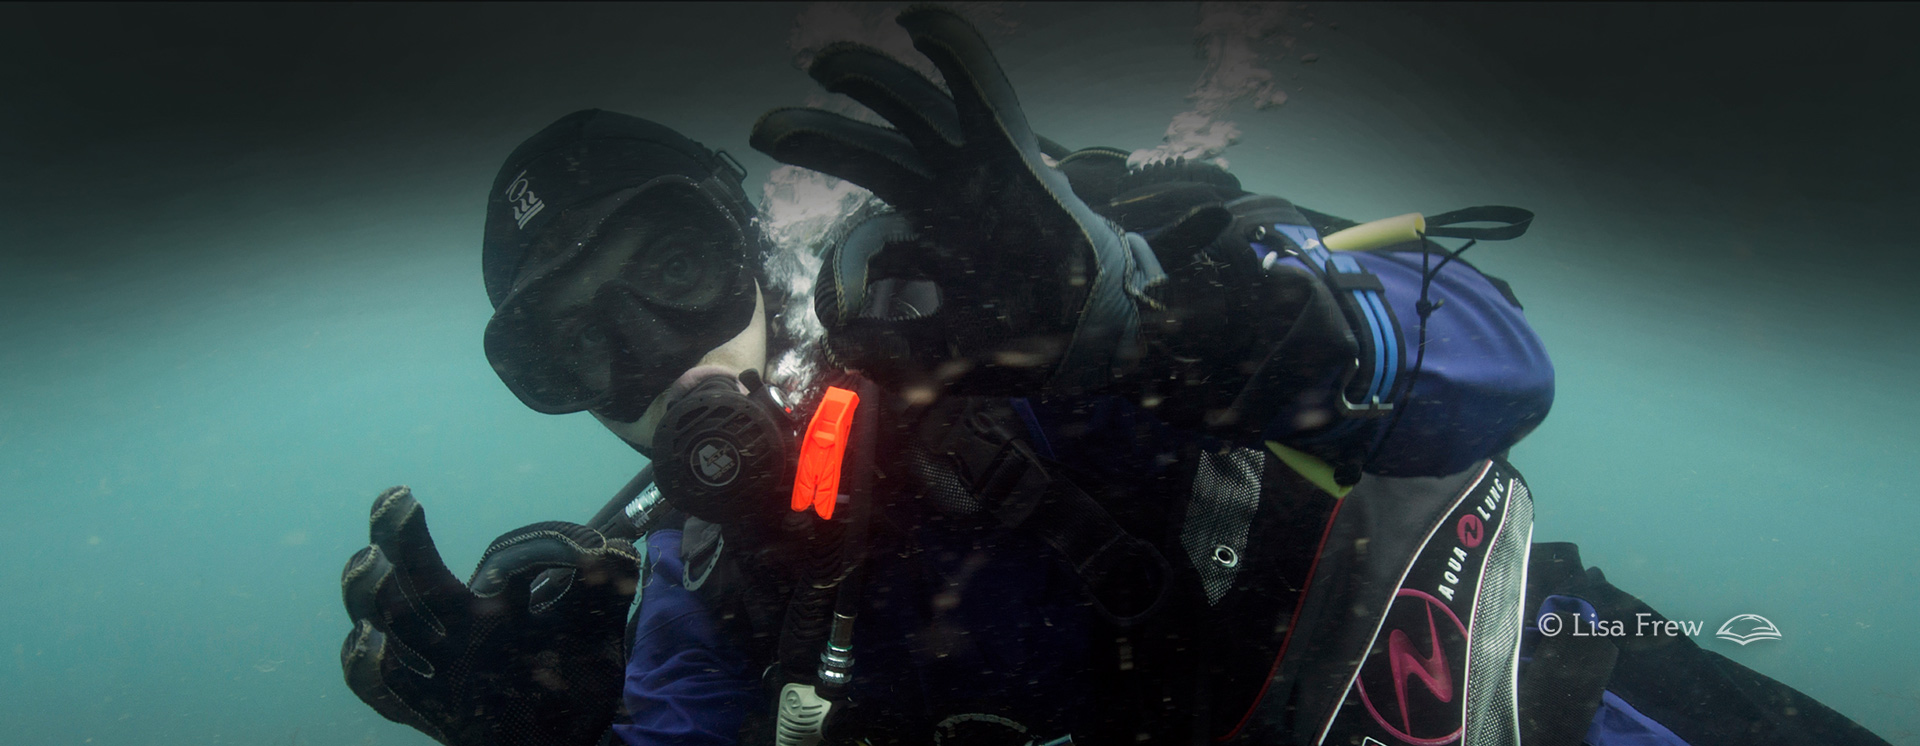 Image of diver on PADI drysuit diver specialty course